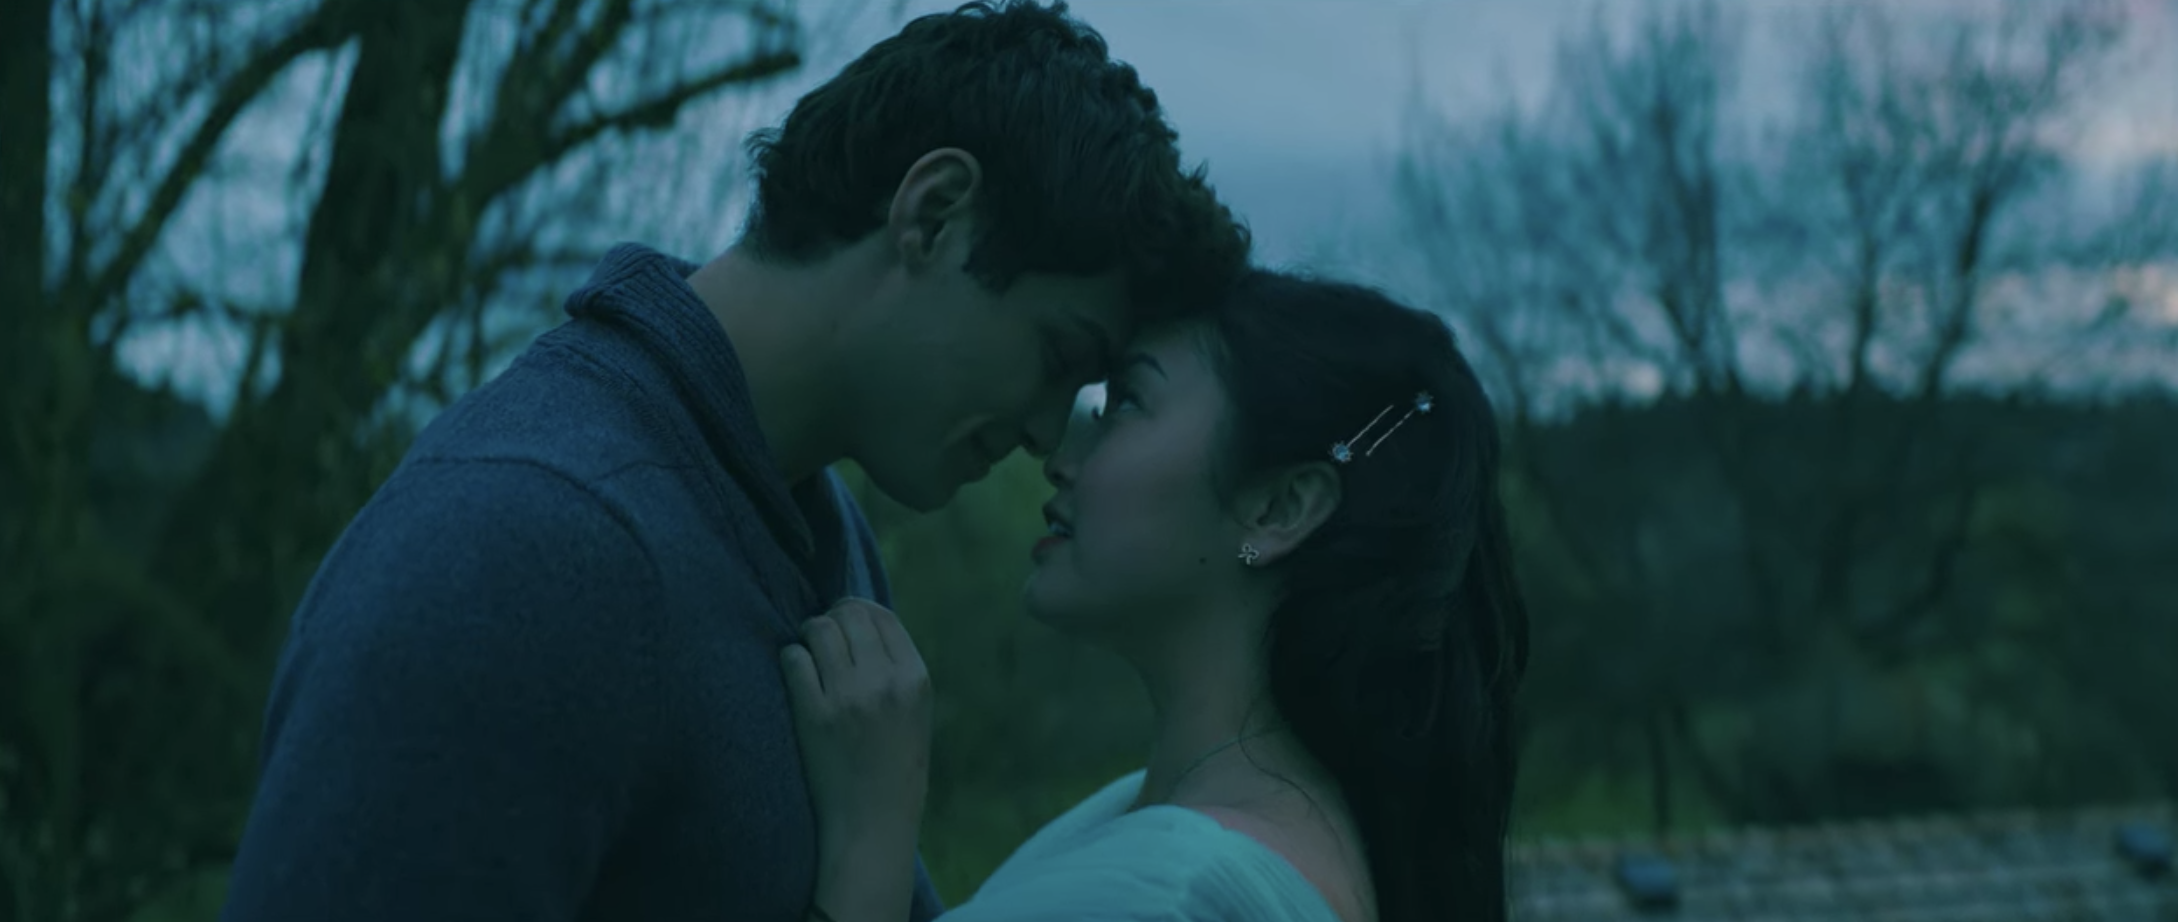 Lara Jean and Peter staring at each other lovingly while they float into the sky.